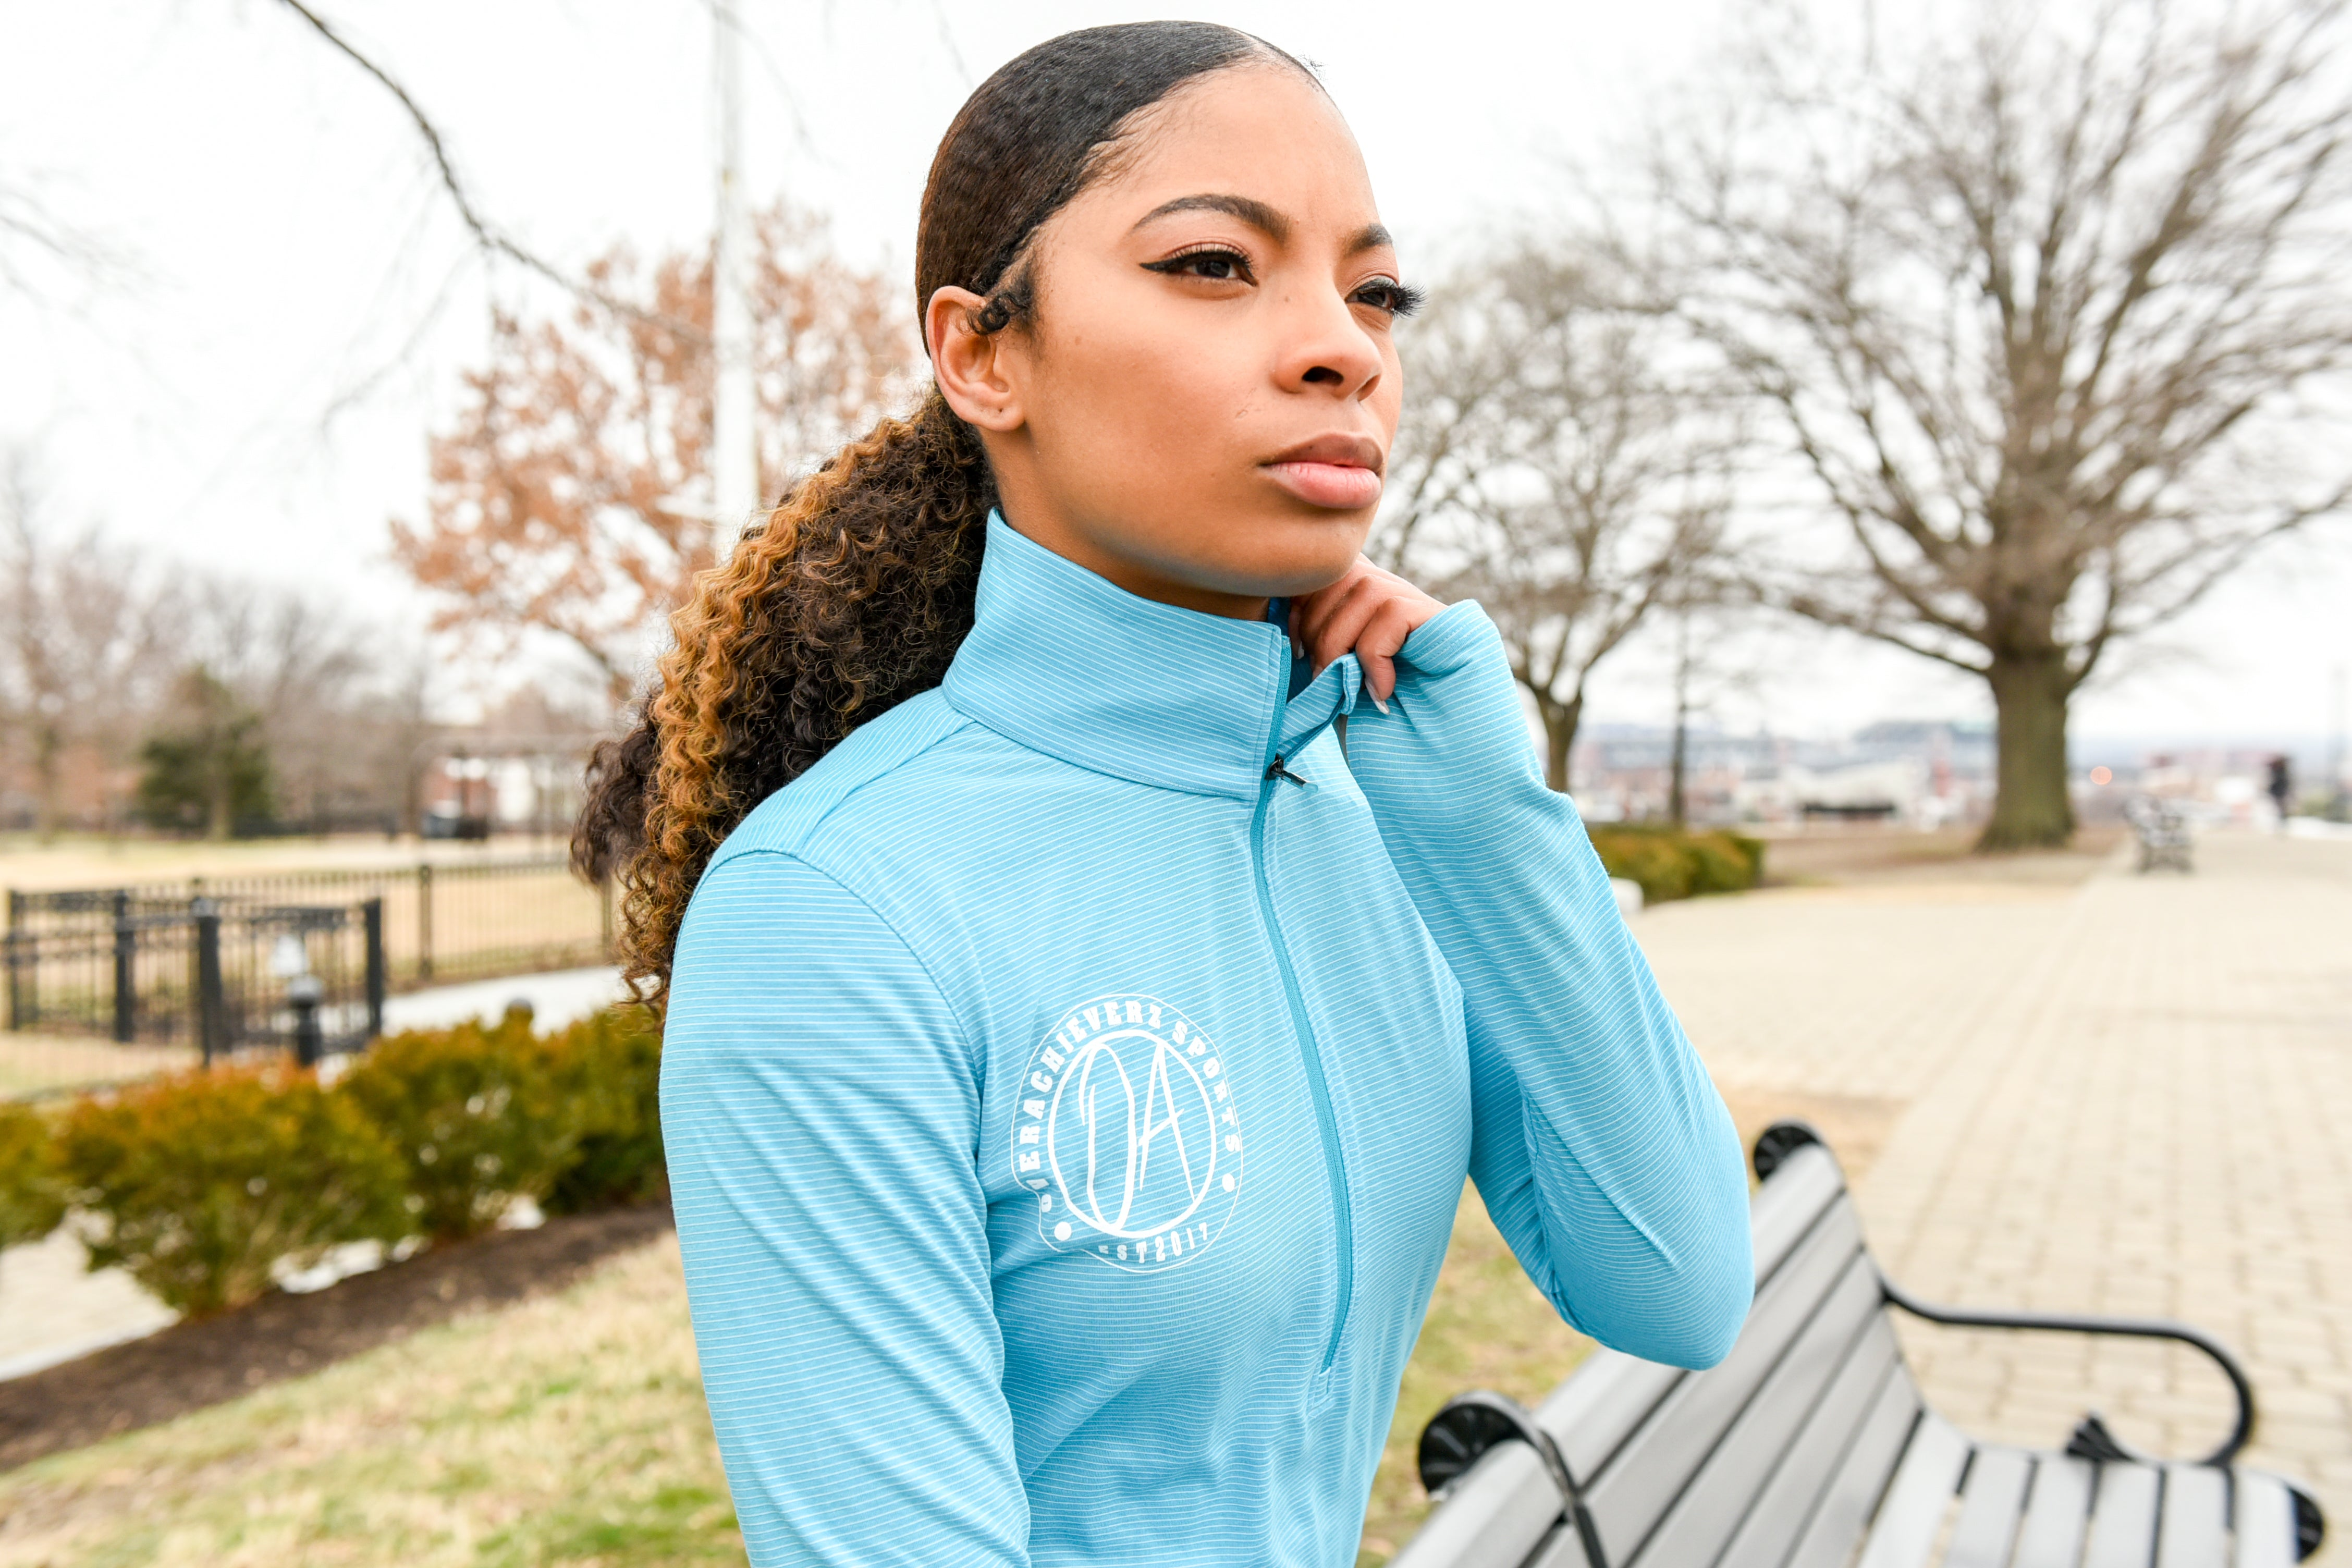 Under Amour X OA Sports Collab  Blue 1/2 Zip Run Shirt